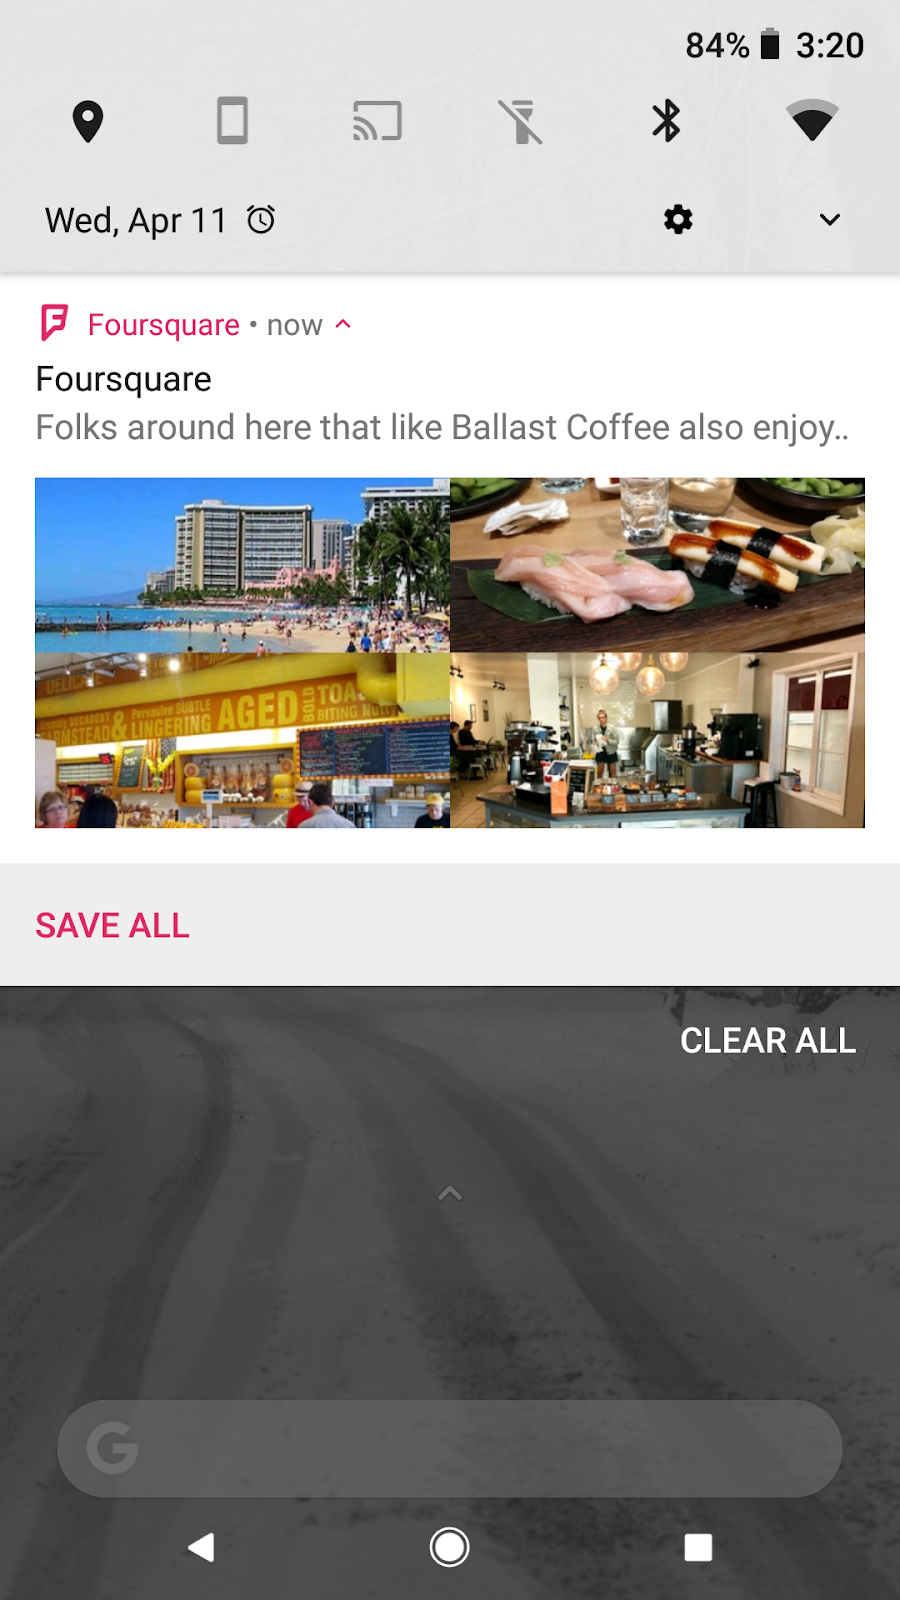 Foursquare notification on phone for recommendations